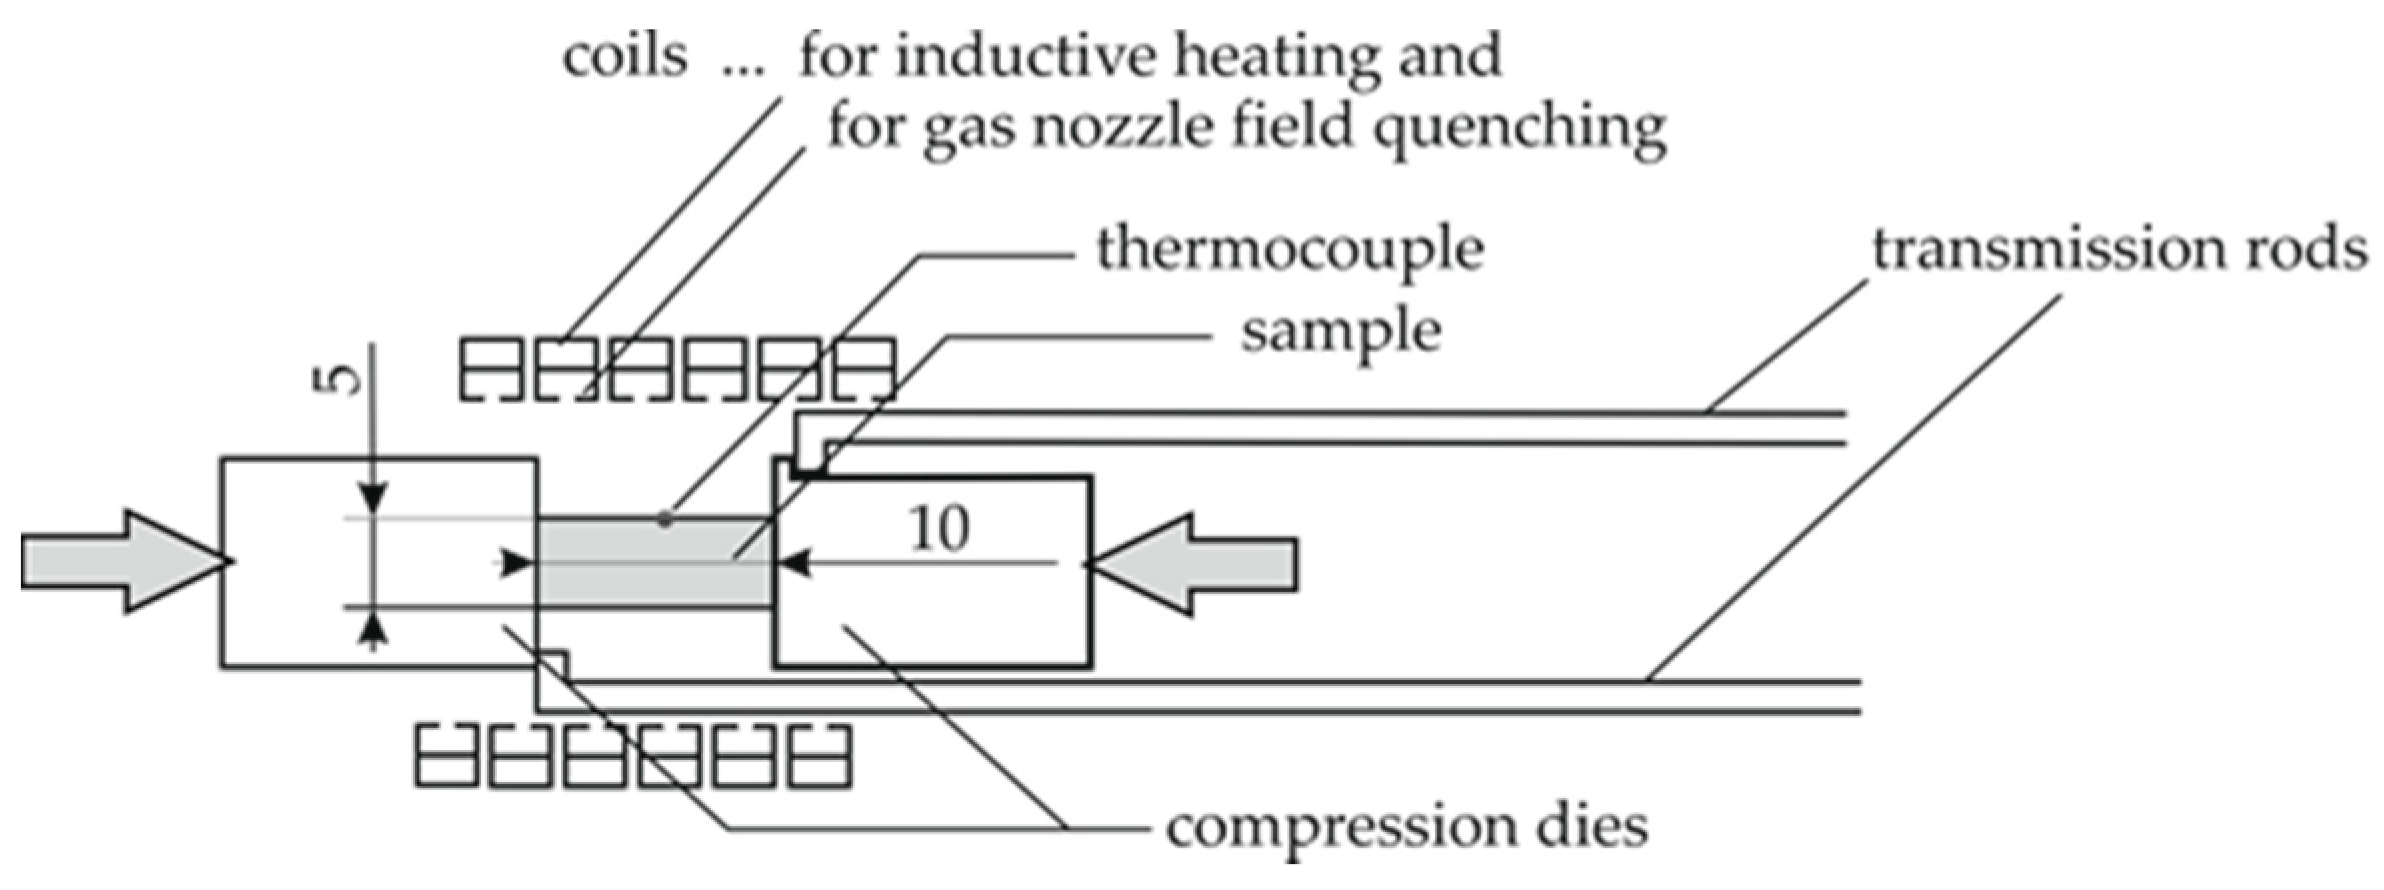 Materials Free Full Text Combined Calorimetry Thermo Mechanical Heyer Engineering Schematics No